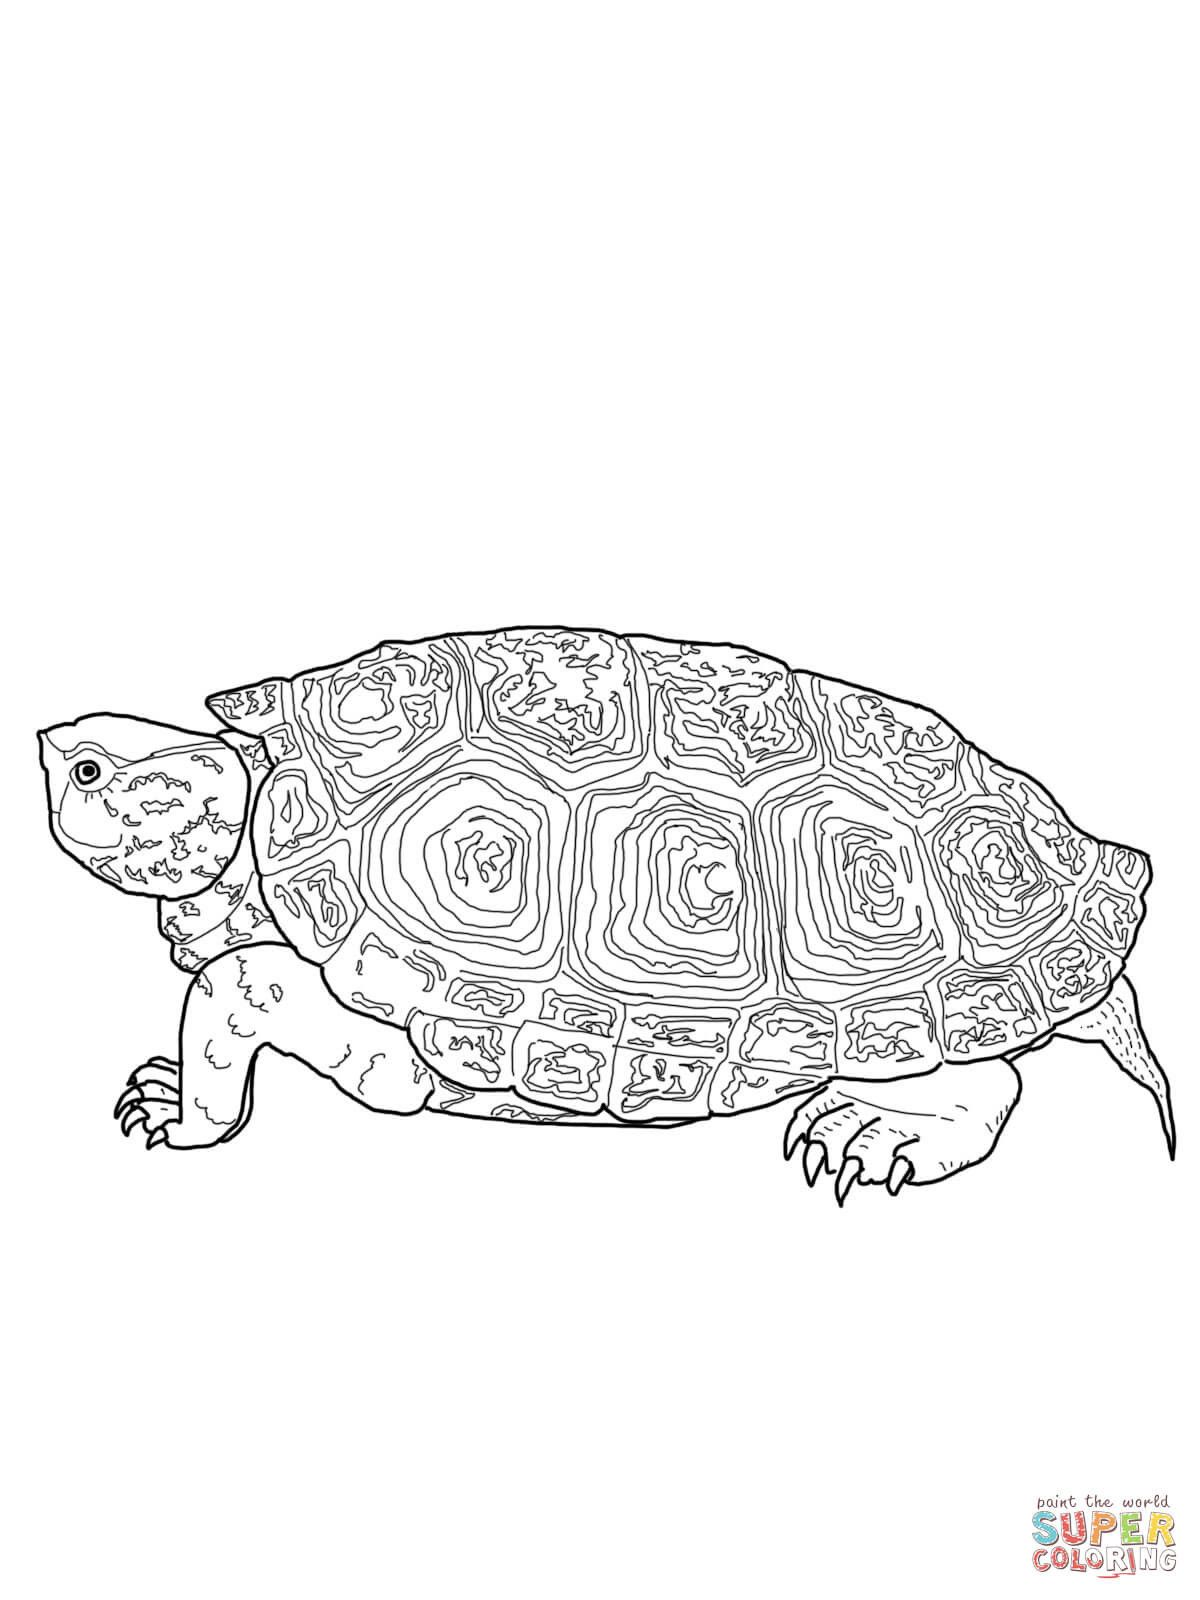 Snapping Turtle Coloring Page Youngandtae Com Turtle Coloring Pages Tortoise Drawing Animal Coloring Pages